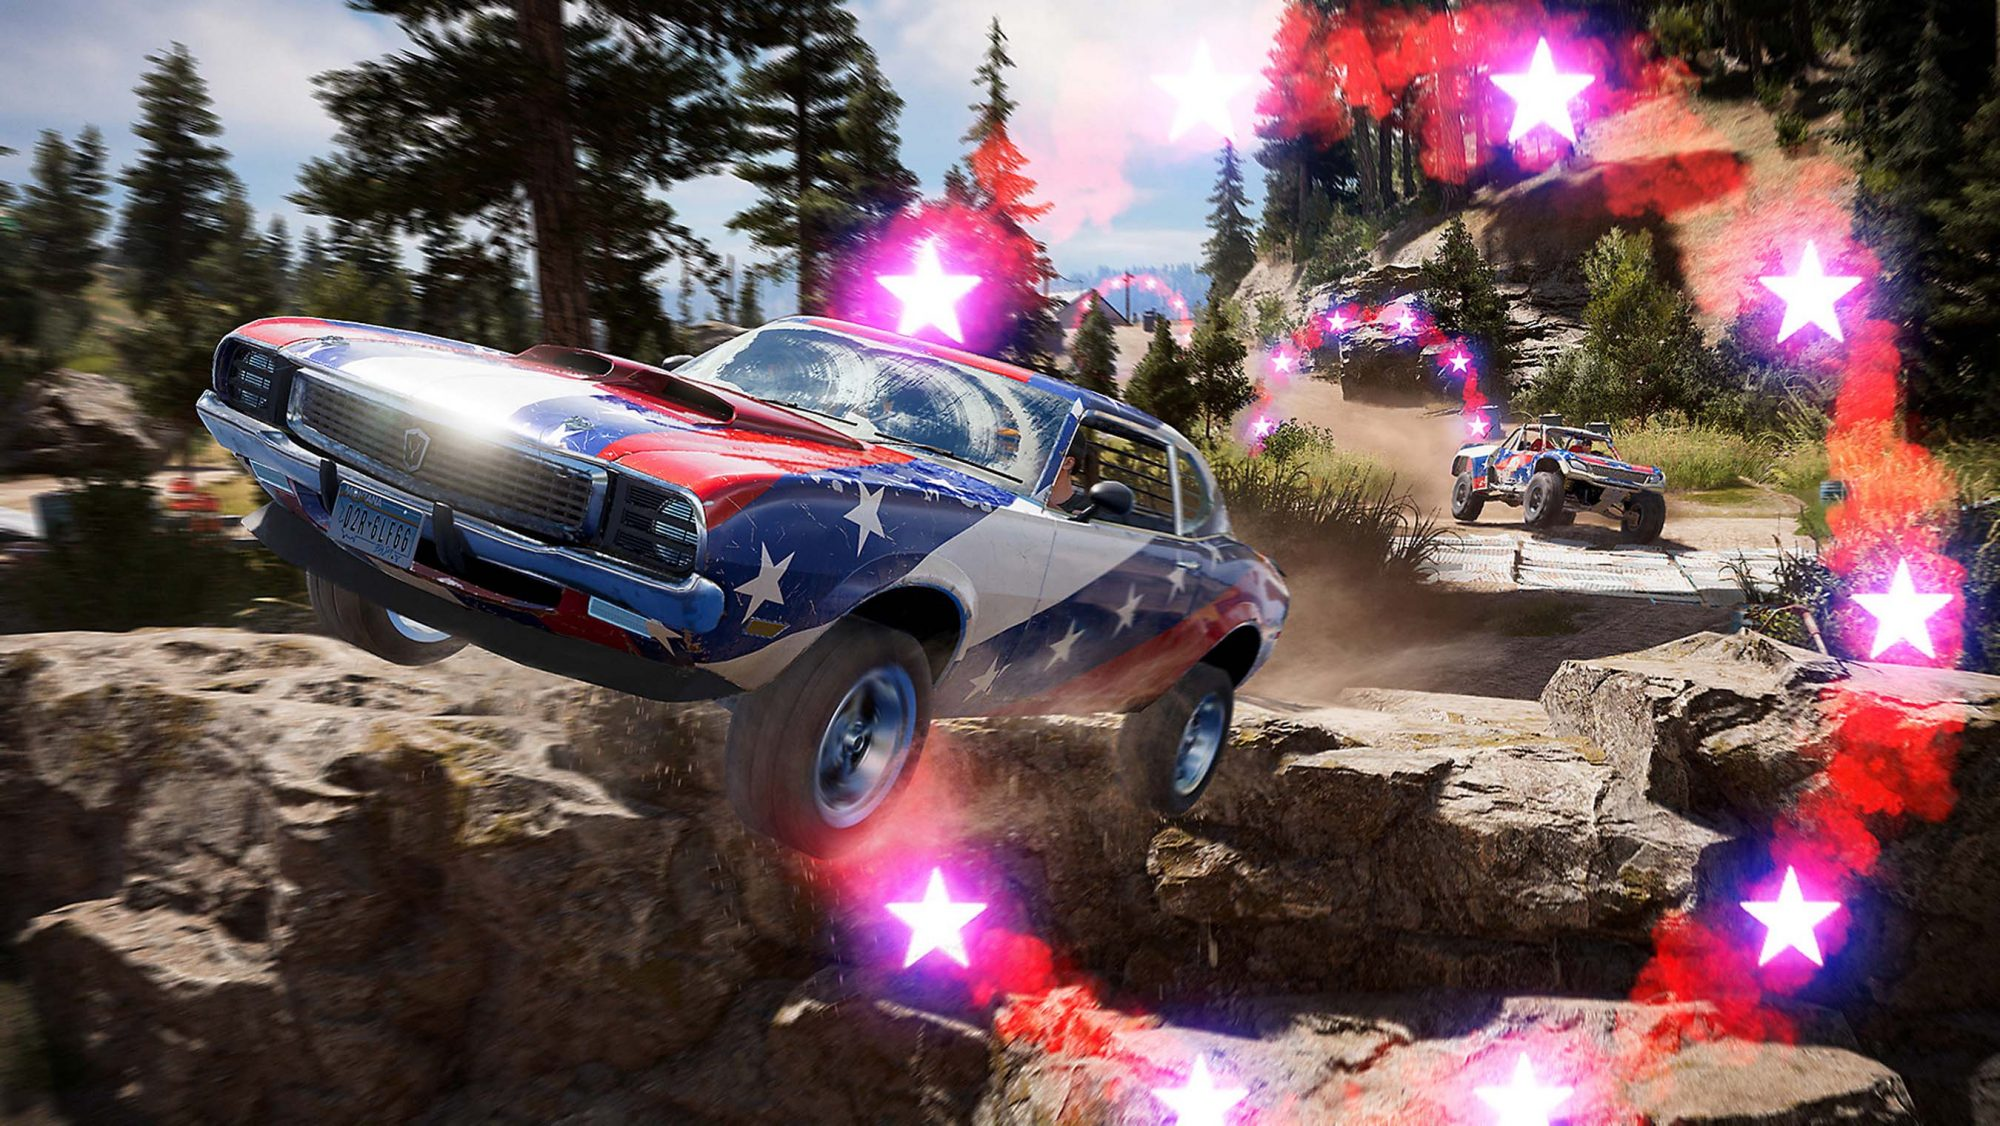 FAR CRY 5Release Date: March 27, 2018Publisher: Ubisoft